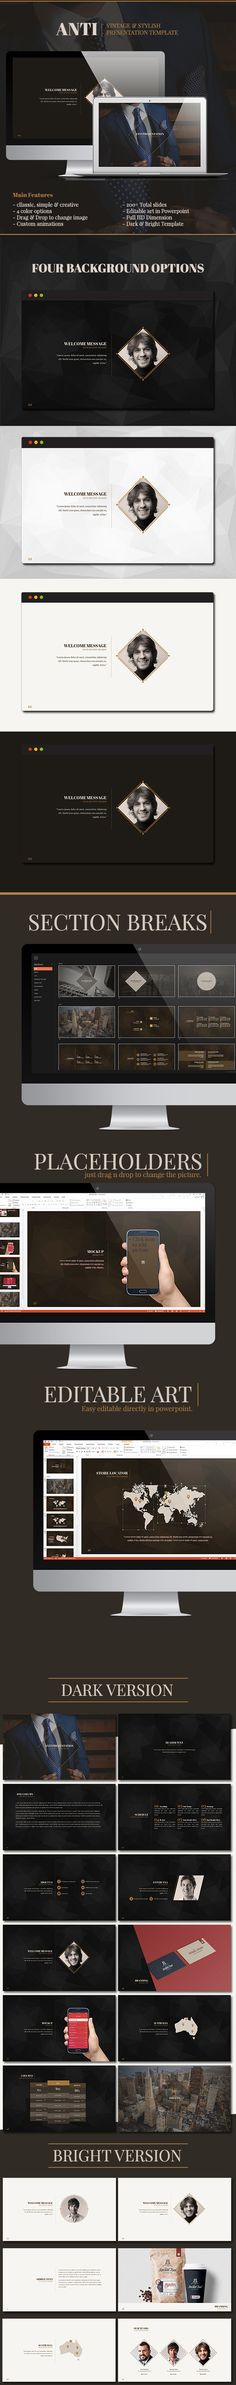 UNIDE - Powerpoint Presentation Template Powerpoint presentation - powerpoint proposal template